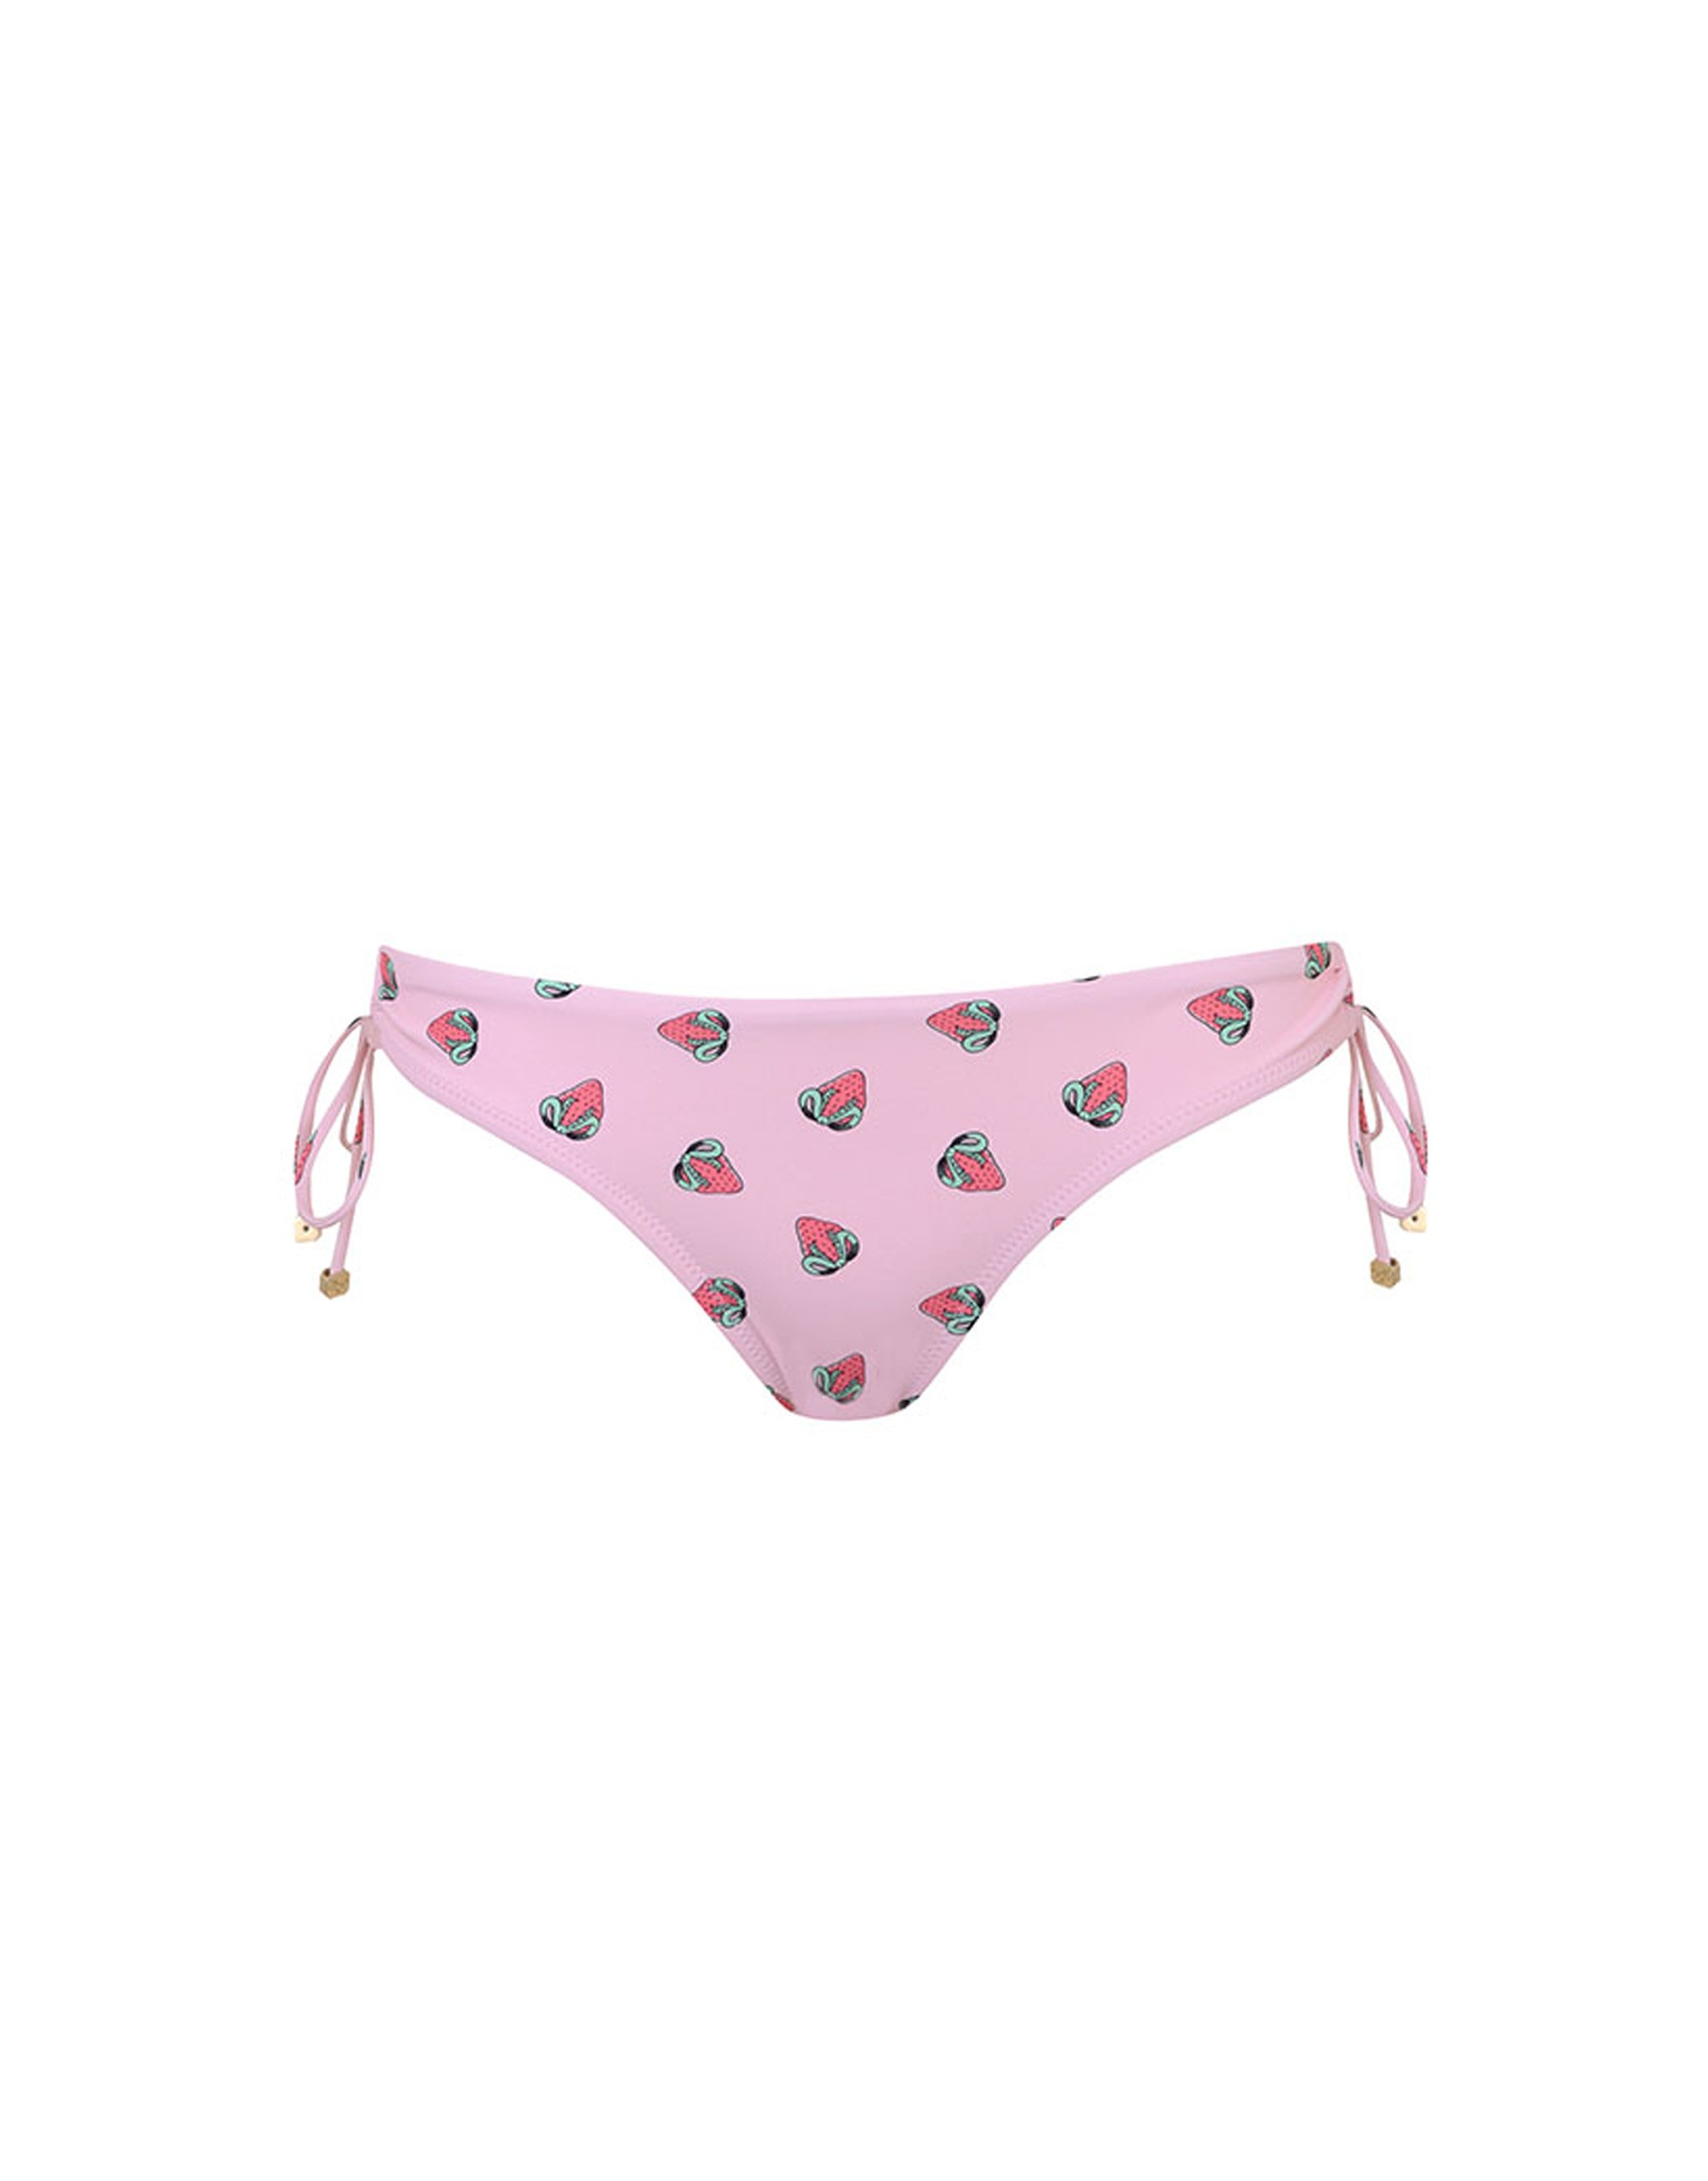 Agent Provocateur Fraise Bikini Bottom Pink And Red